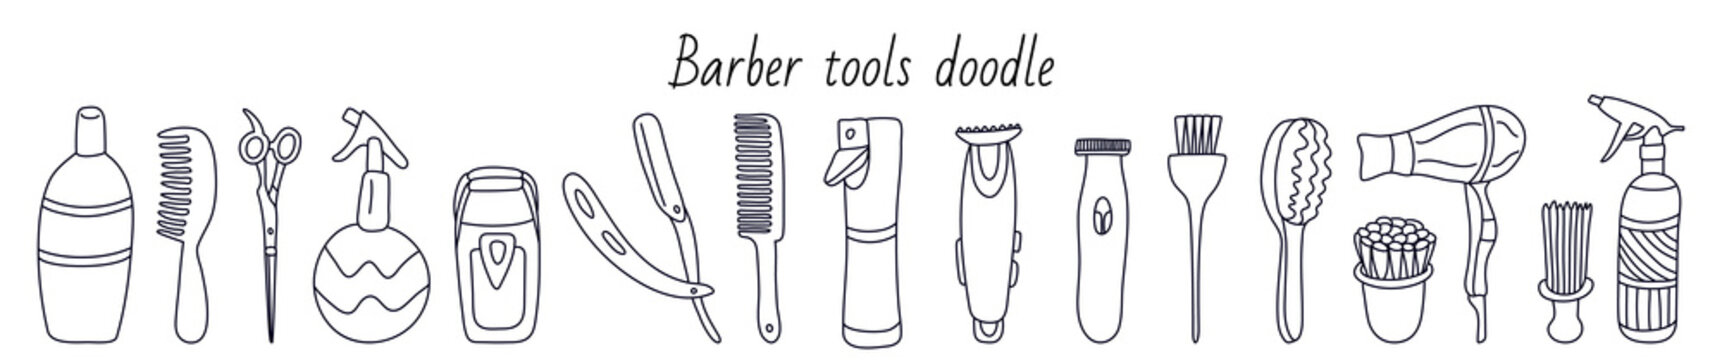 Set with barber tools. Manual  razor, flat comb hair, brushes, spray, shaver, trimmer. Hand drawn vector illustration in black ink on white. Isolated outline. Doodle style. Great for barbershops.